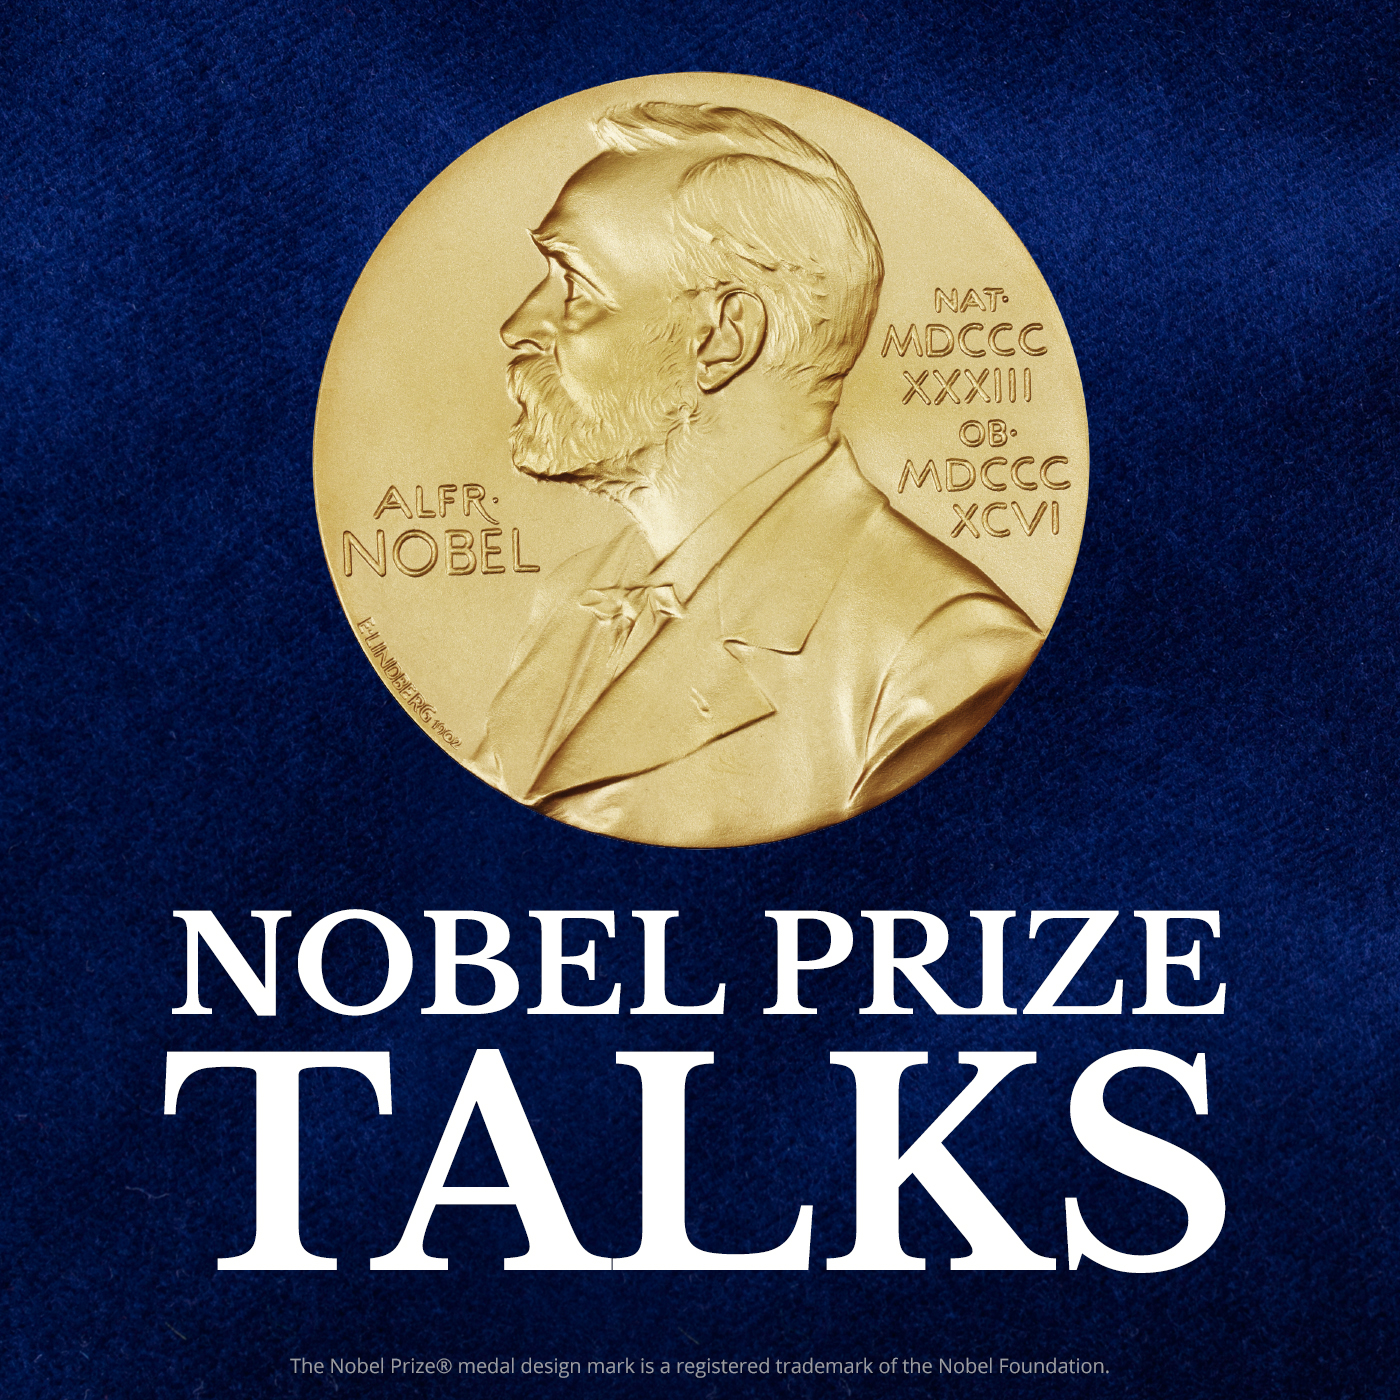 Nobel Prize Talks